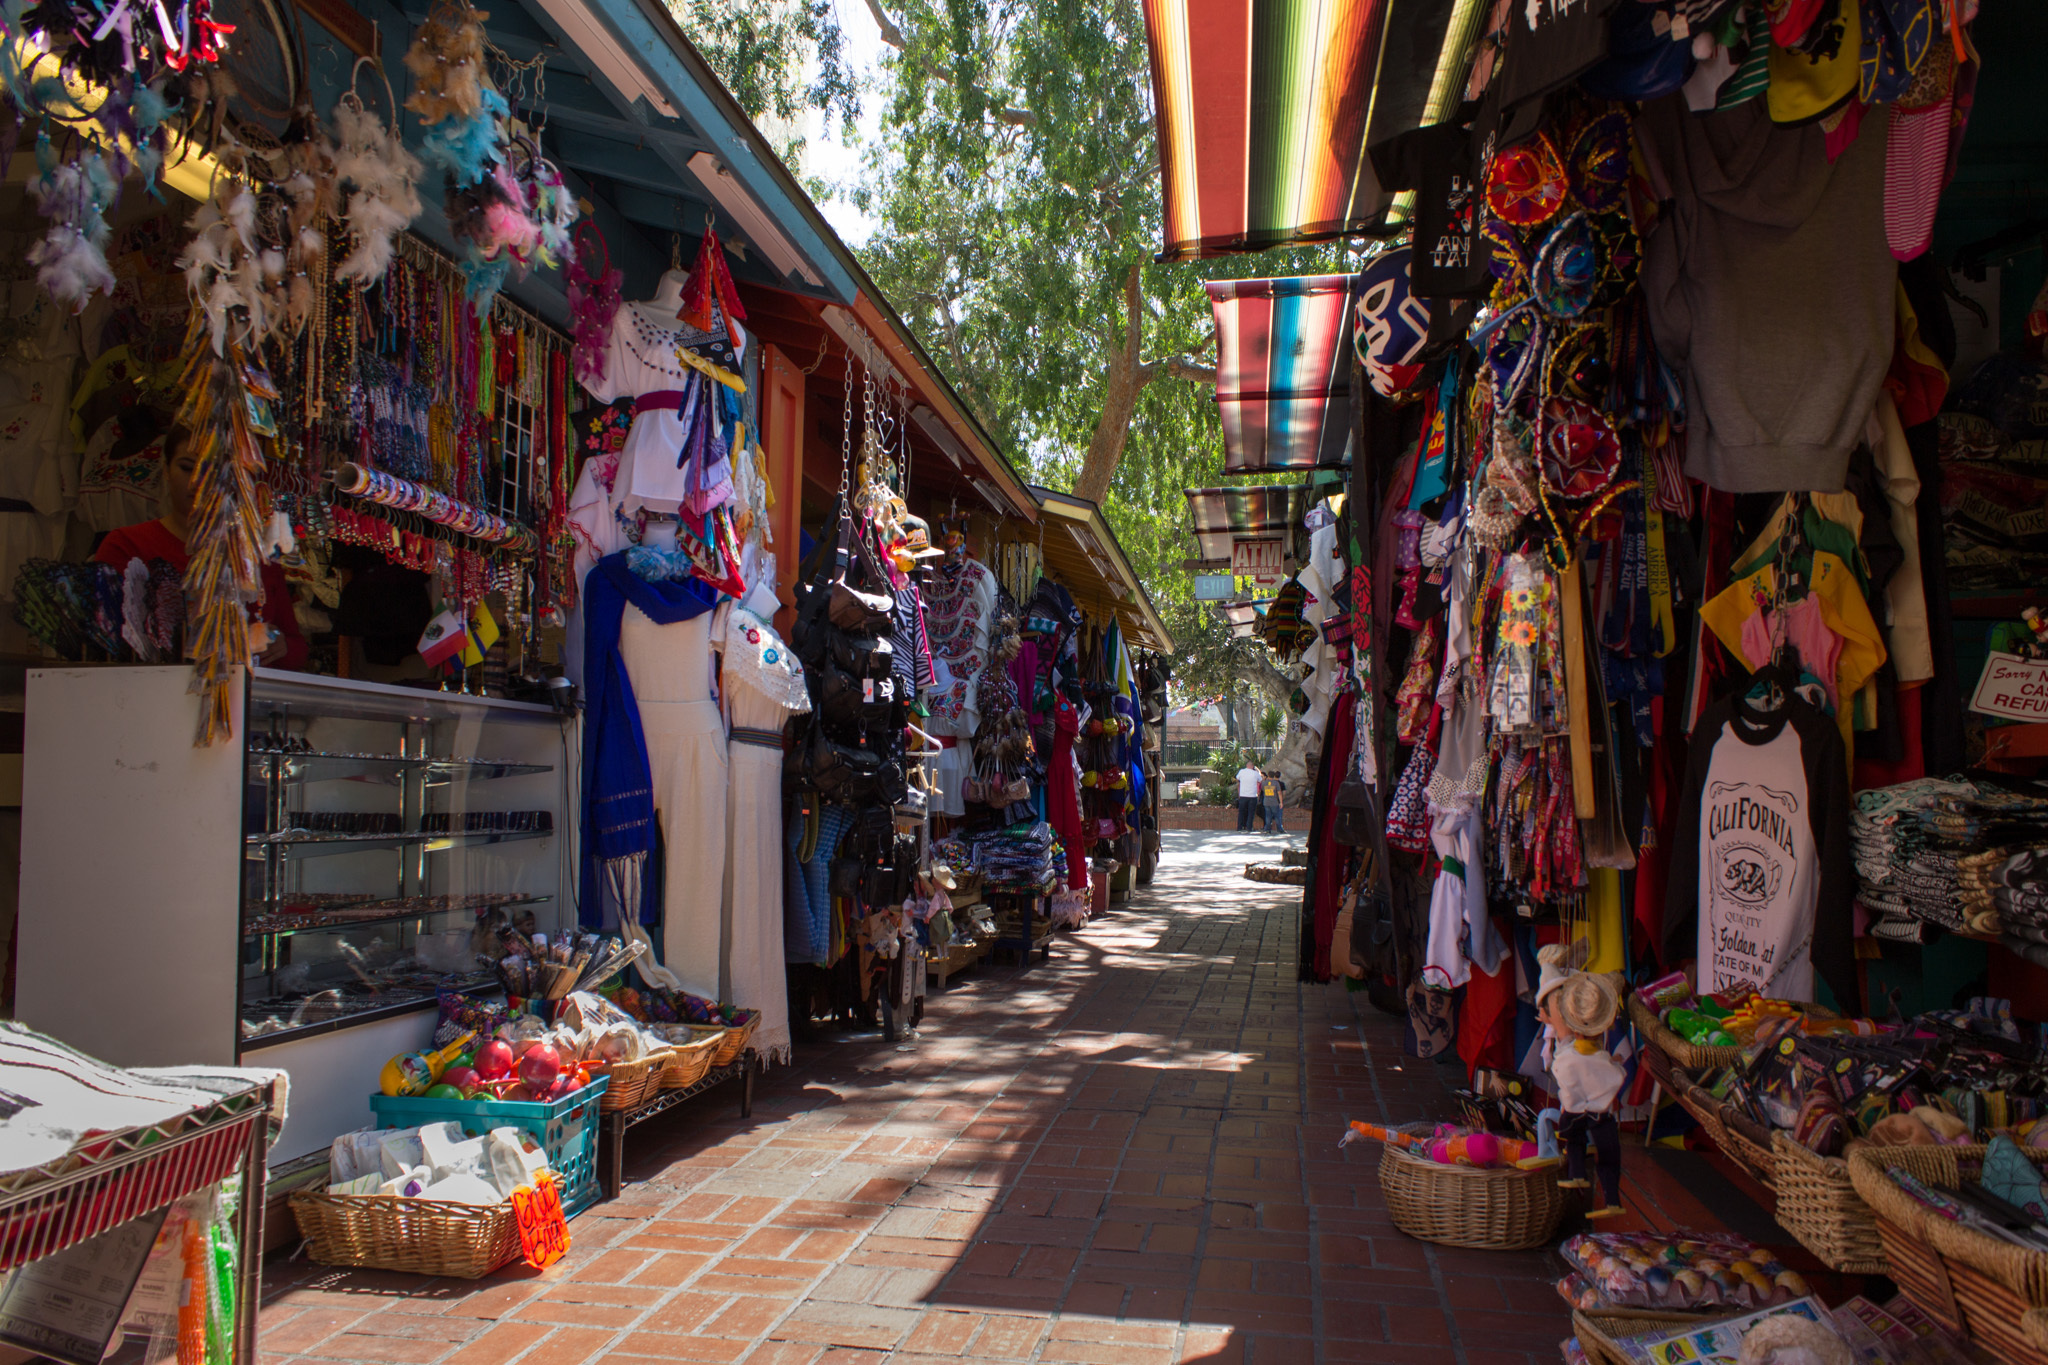 Olvera Street is great for exploring LA's history, eating Mexican food and shopping for gifts.